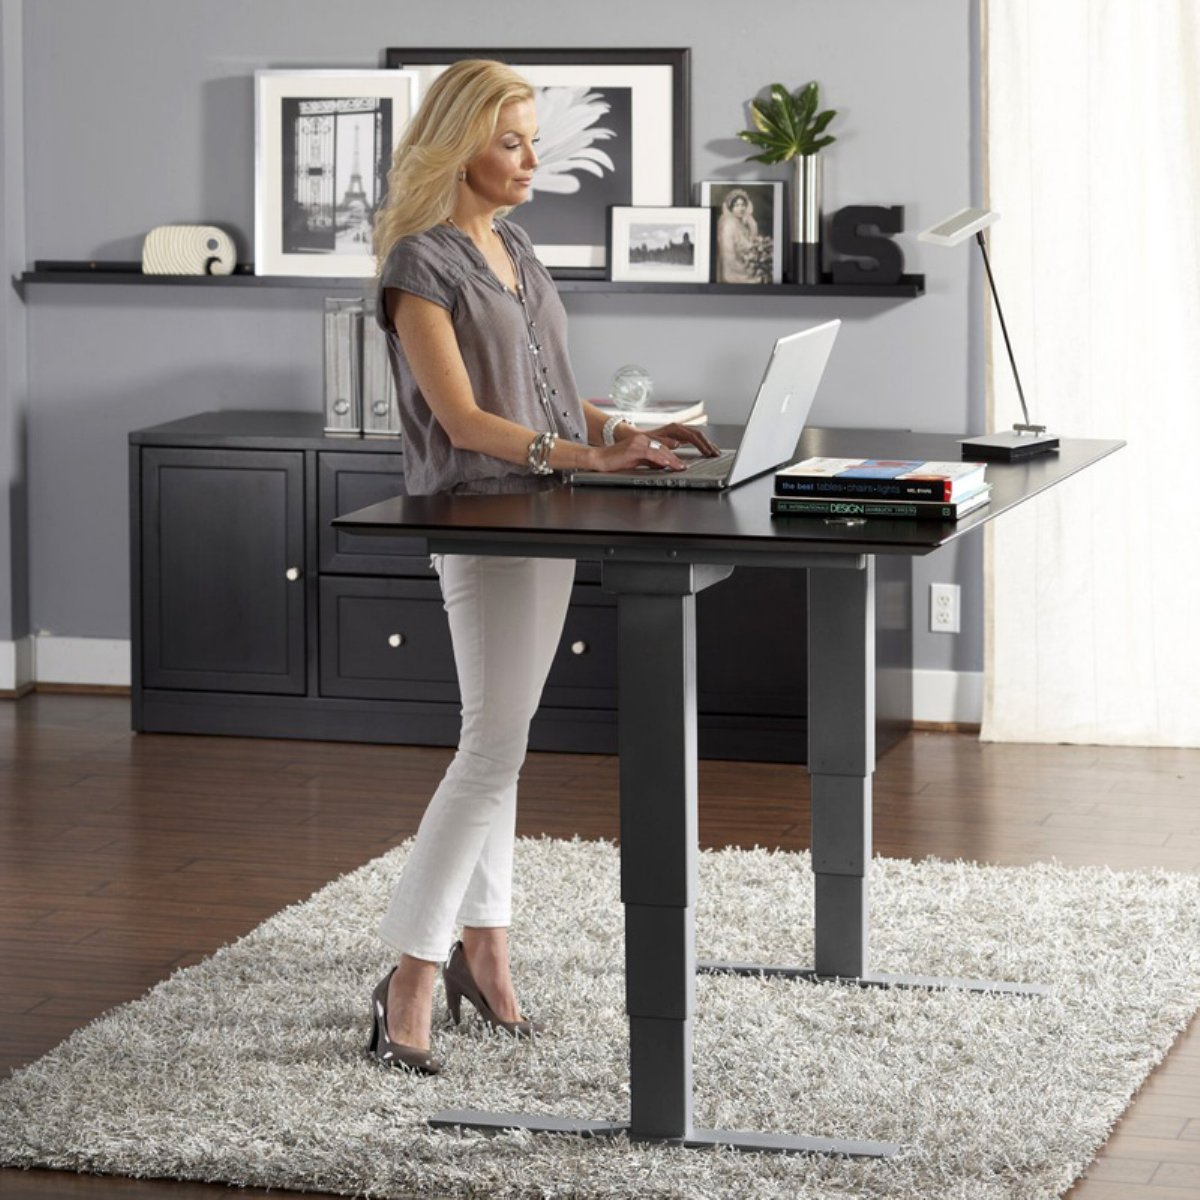 what to consider about the use of standing height adjustable desk for your office duties